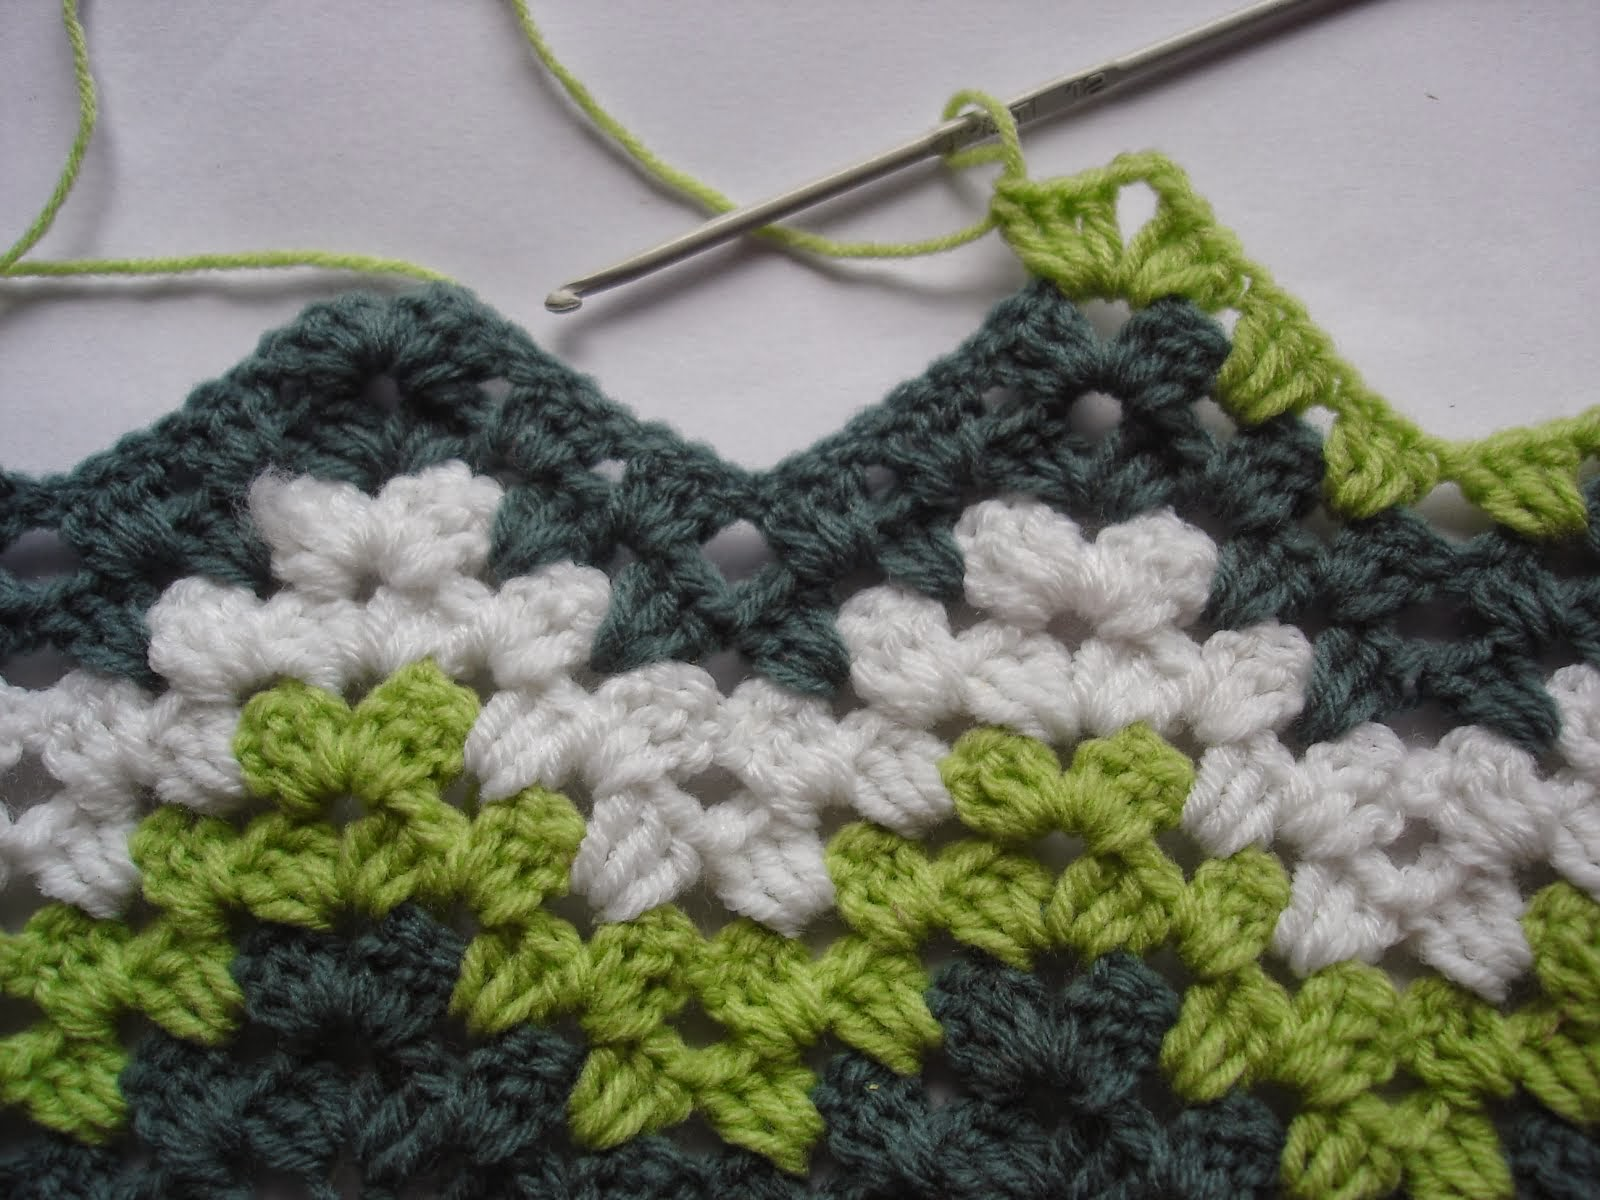 Crochet granny ripple tutorial